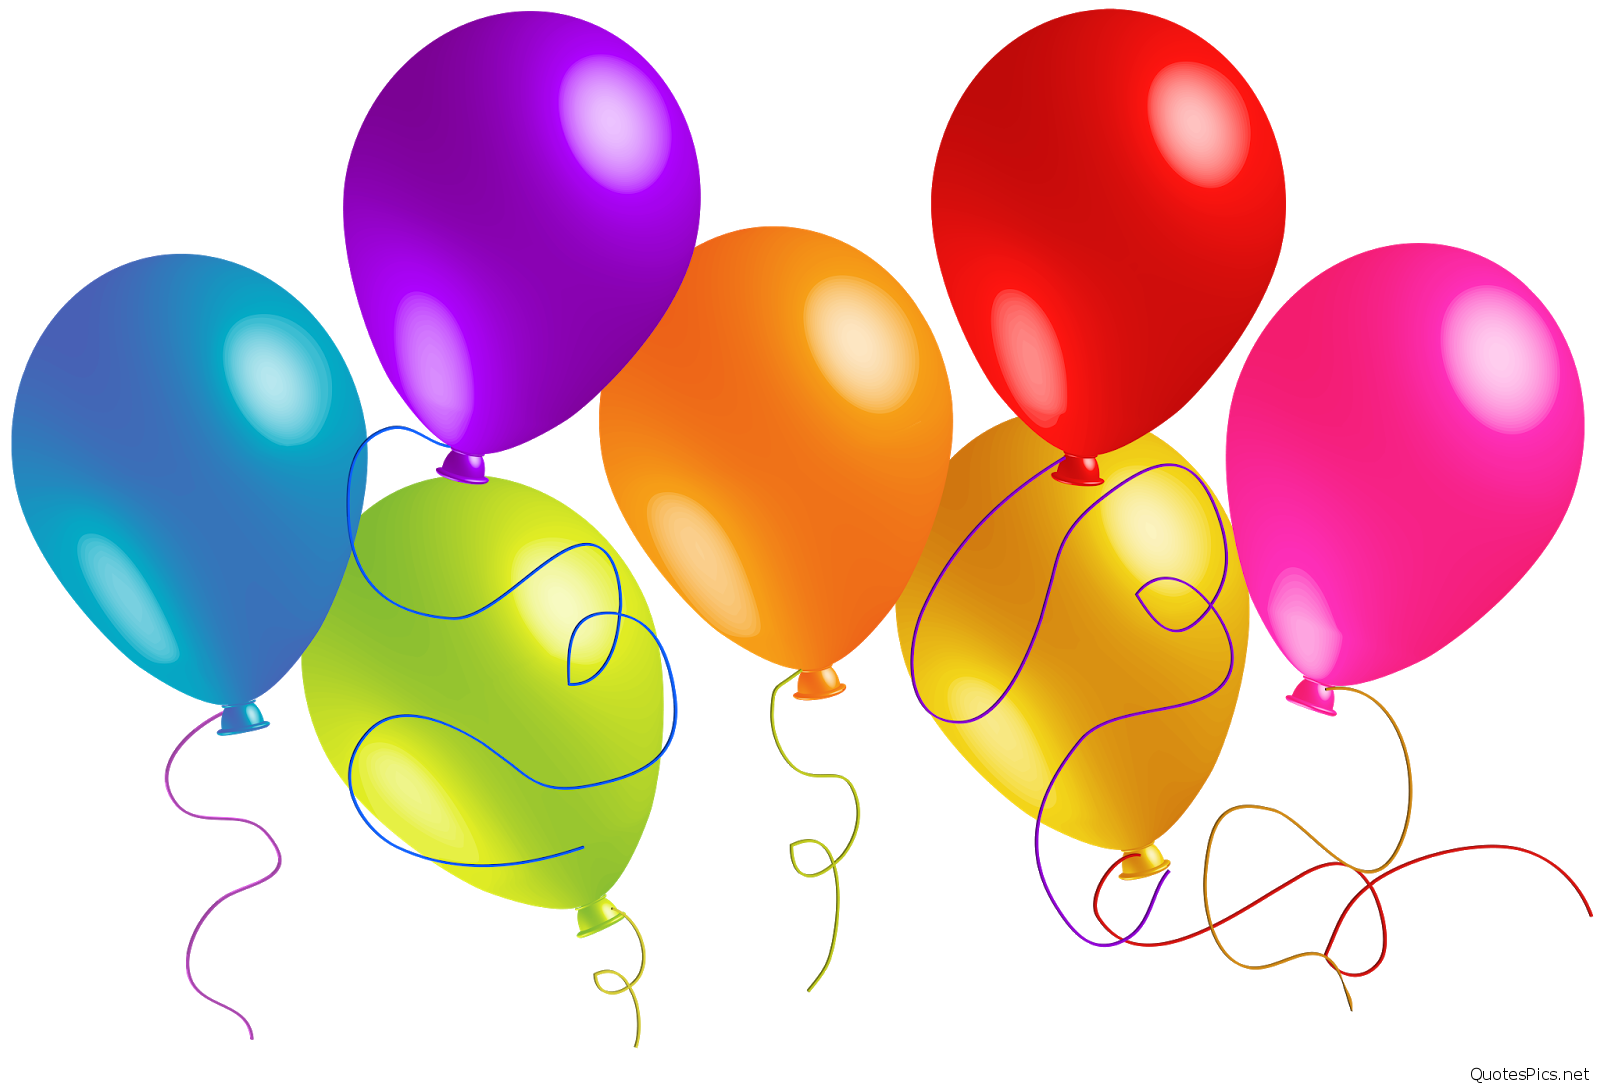 Free business cliparts download. Anniversary clipart office